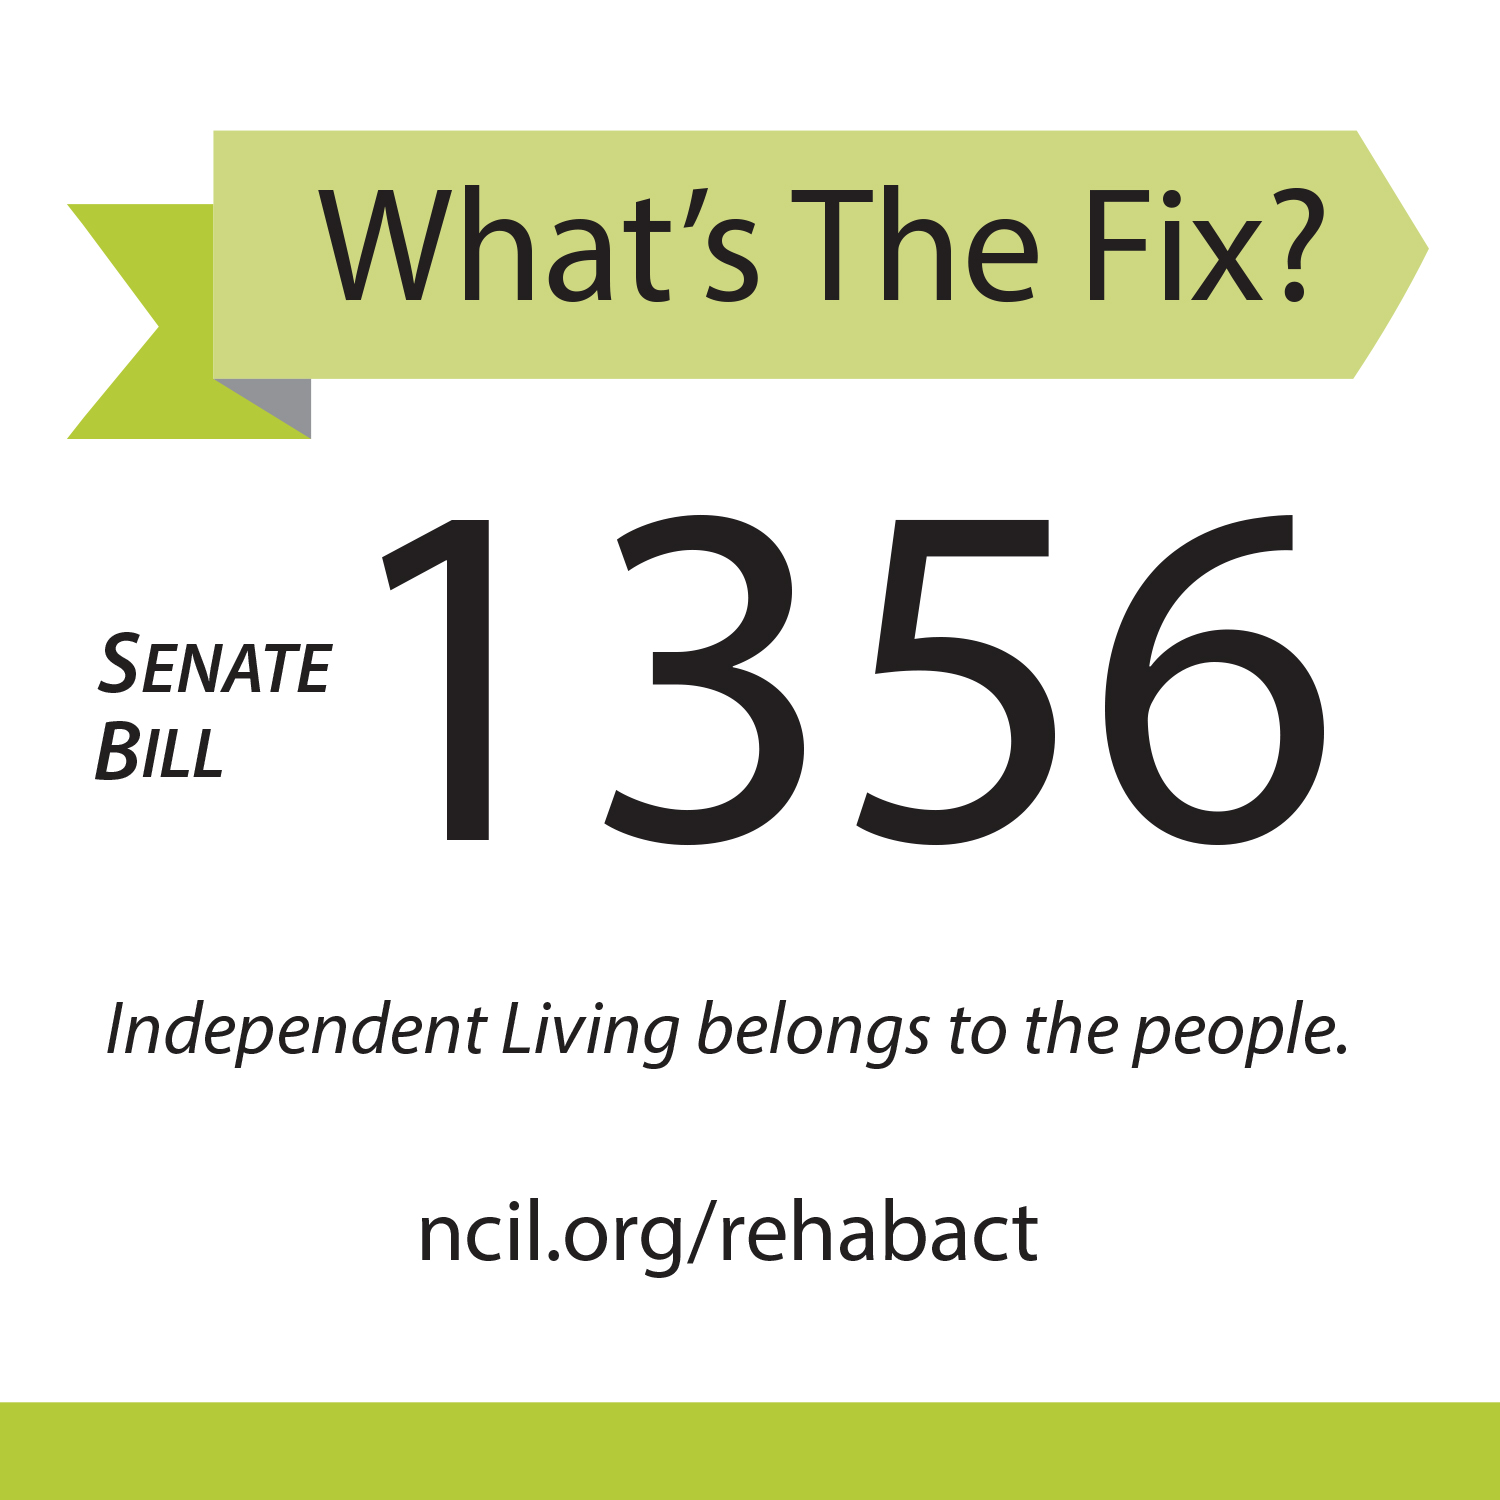 What's the fix? Senate Bill 1356 - Independent Living belongs to the people. ncil.org/rehabact